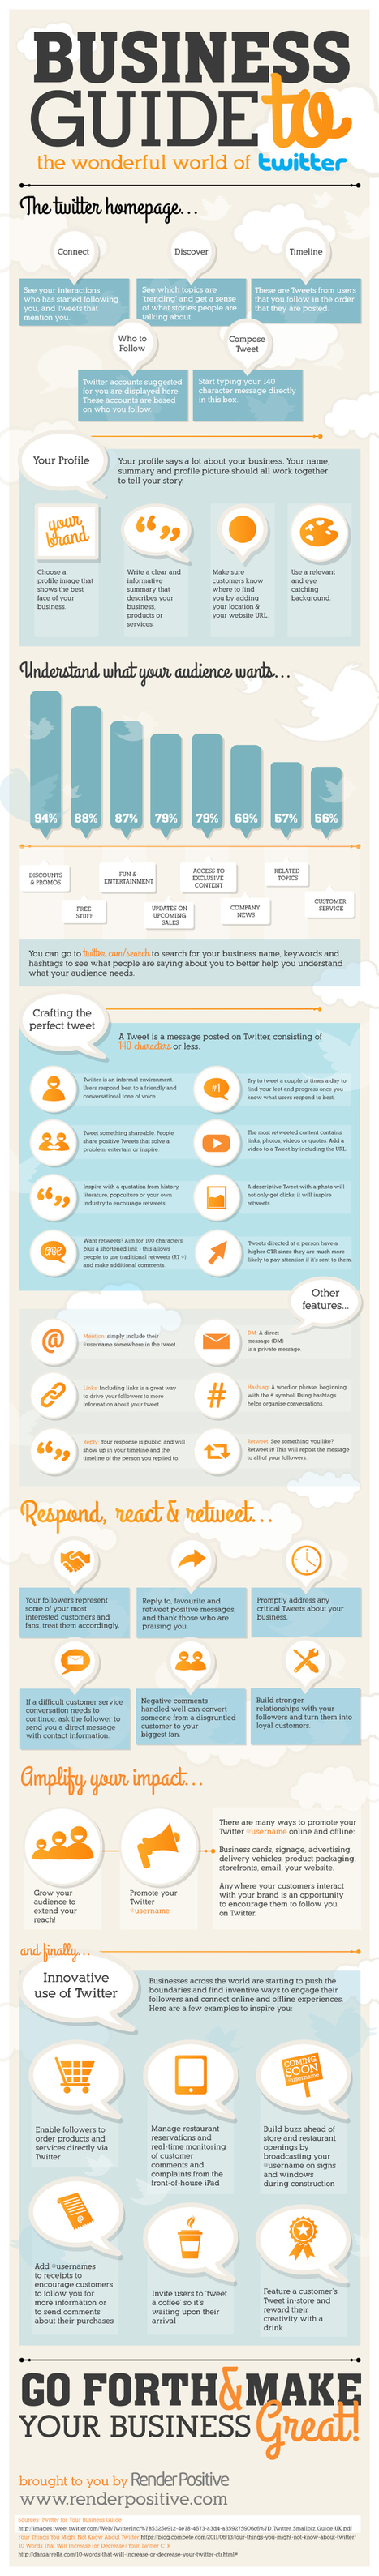 Twitter Guide for New Businesses [infographic] | Social Media | Scoop.it